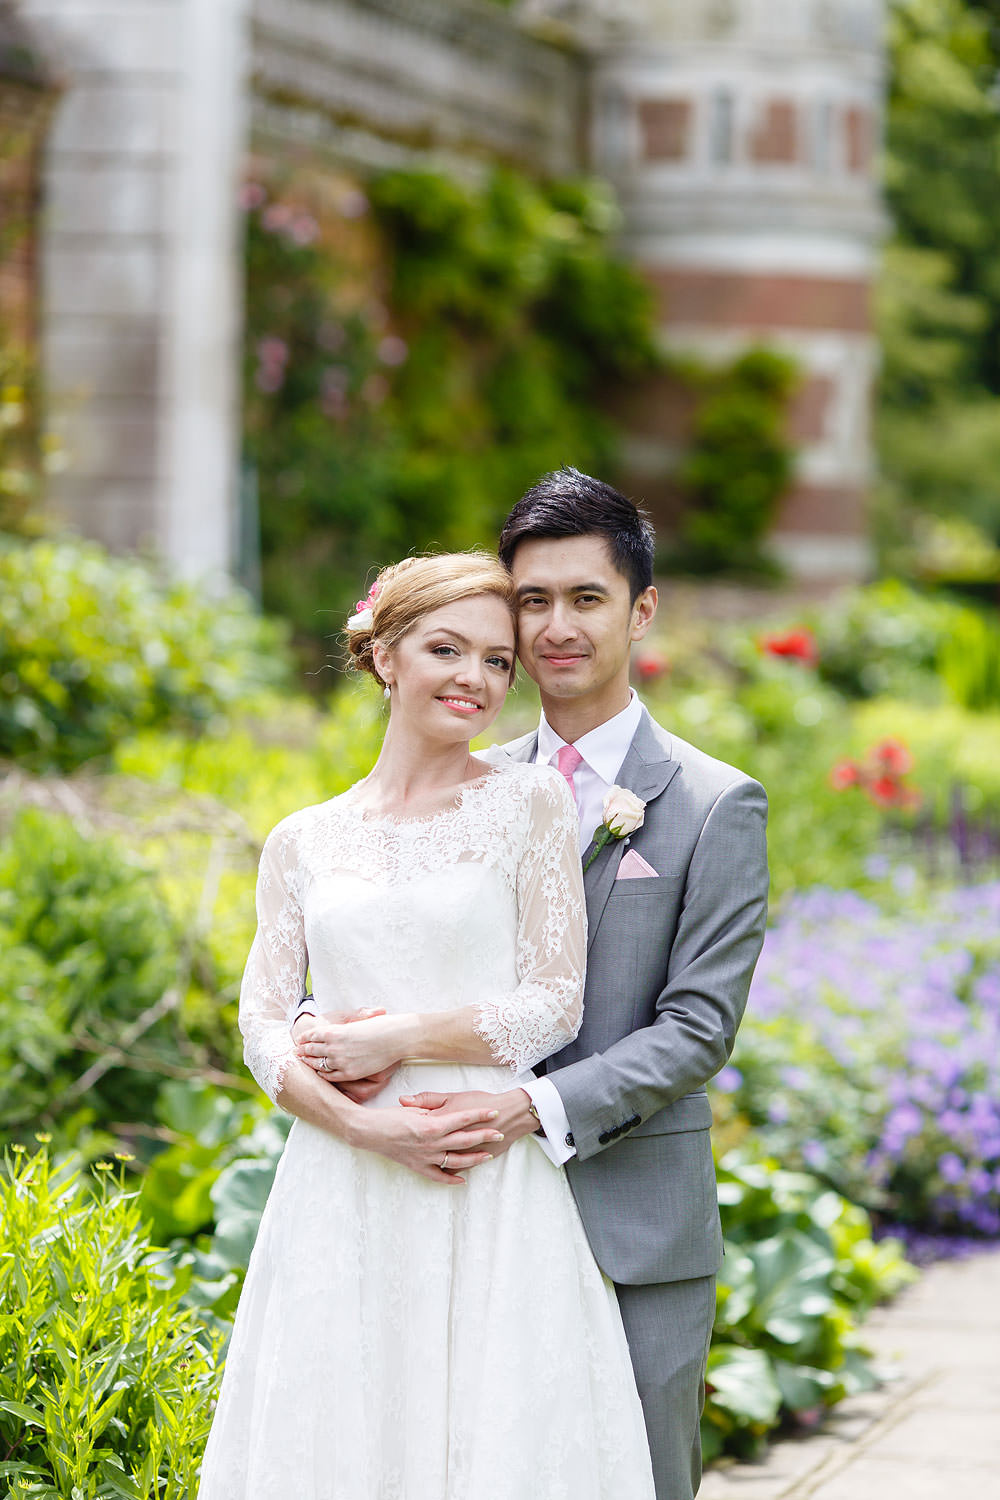 Colourful picture of the couple at Cliveden House